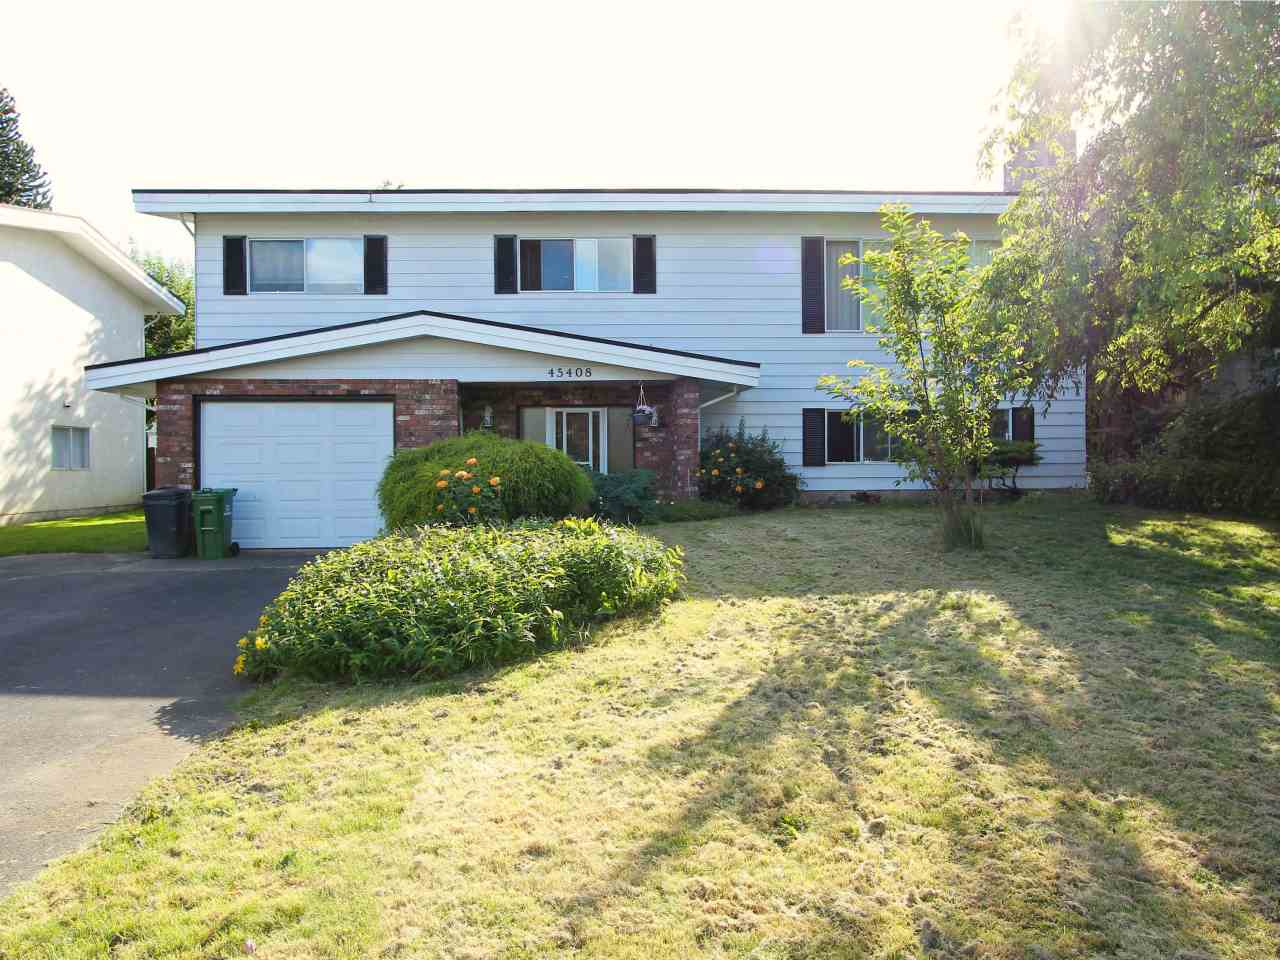 Main Photo: 45408 SPARTAN Crescent in Chilliwack: Chilliwack W Young-Well House for sale : MLS®# R2178949